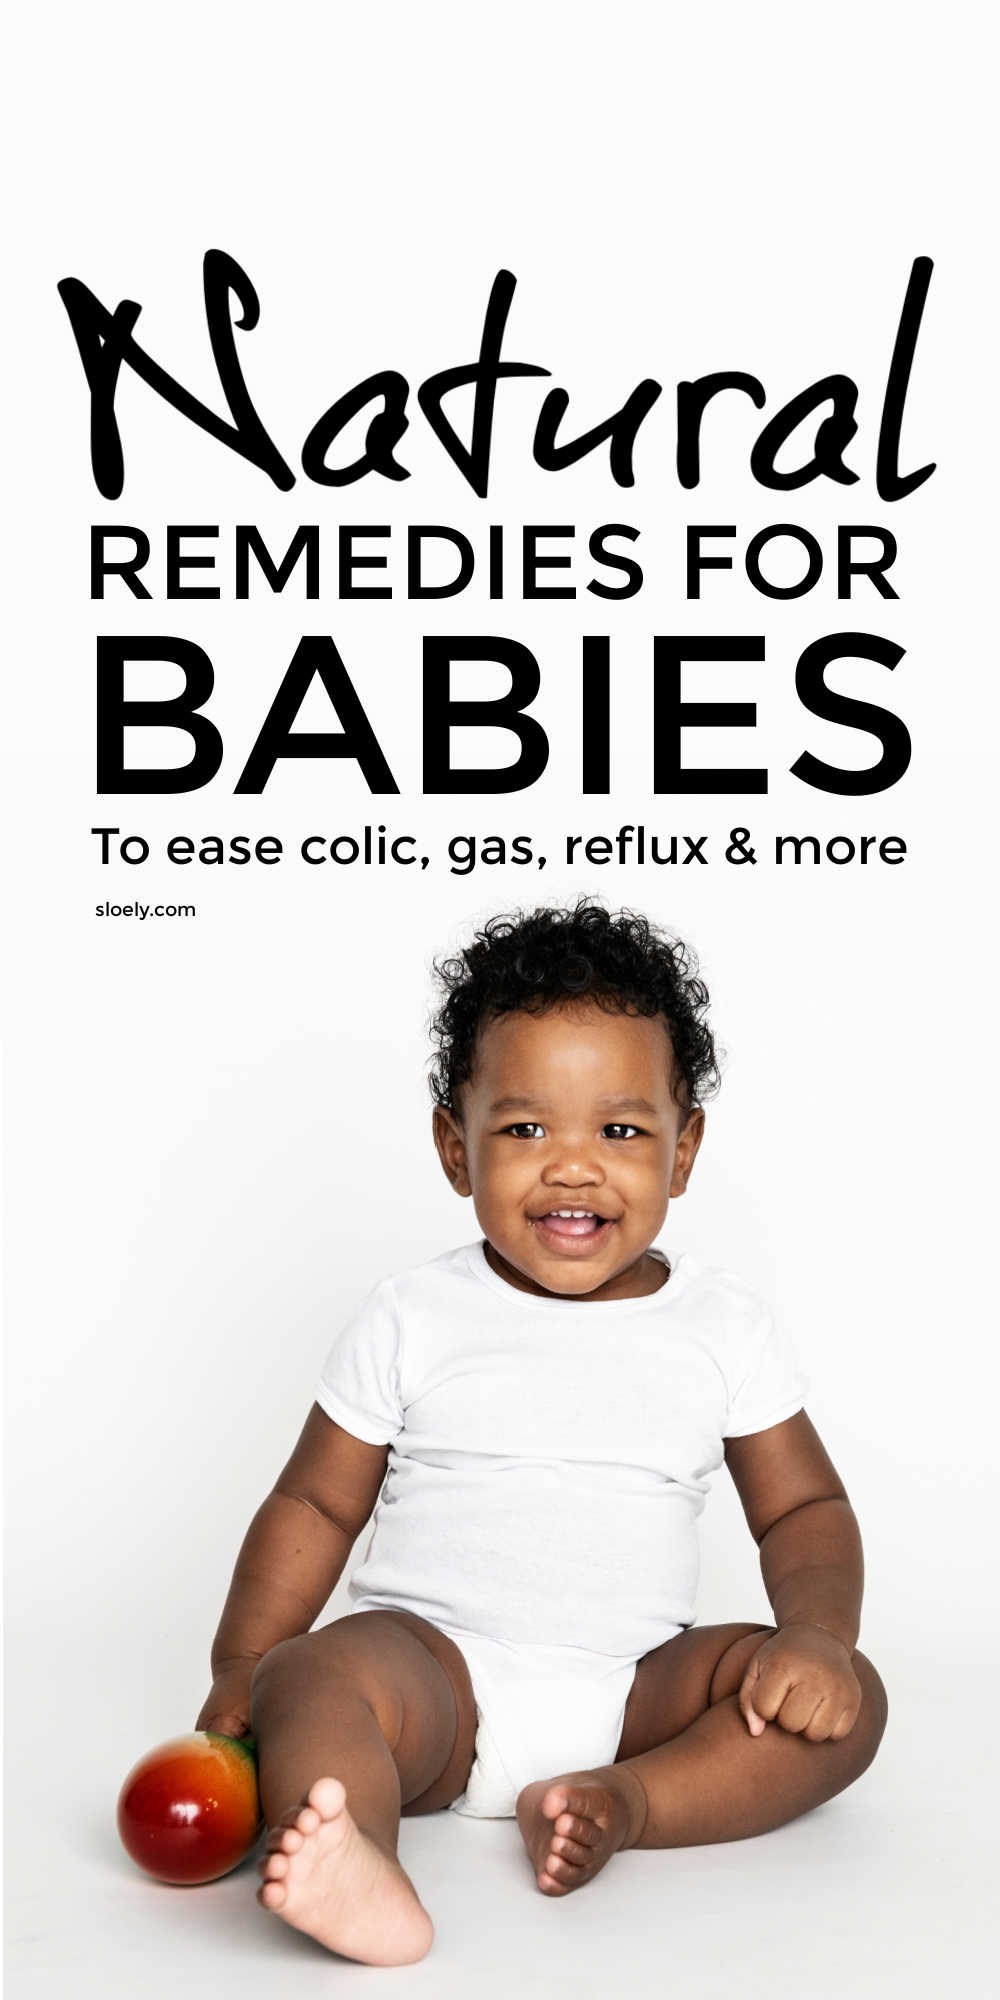 Natural Remedies For Babies